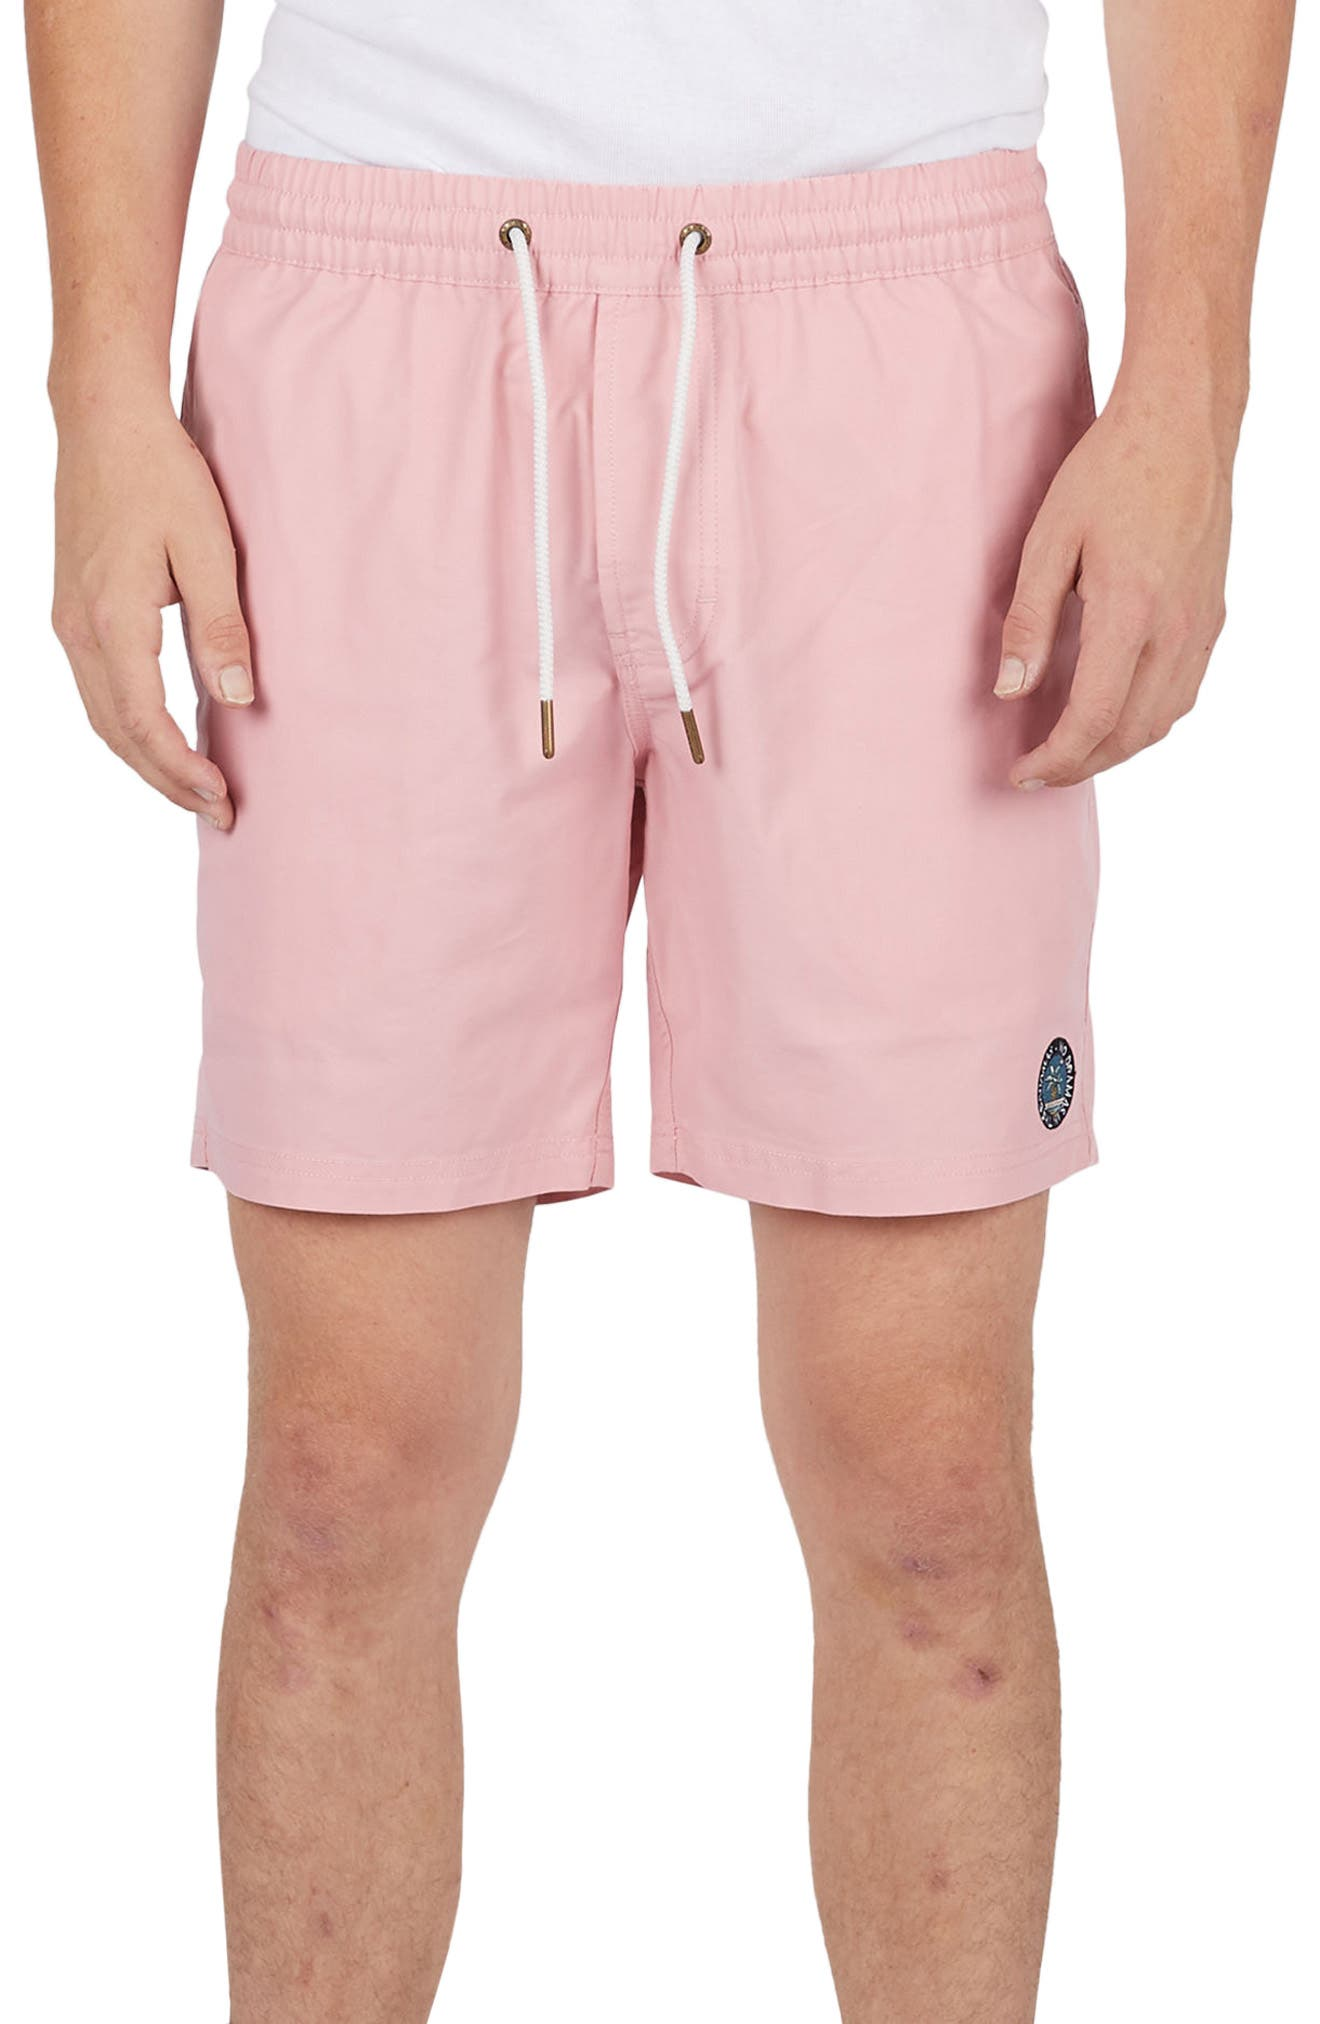 Amphibious Shorts,                             Main thumbnail 1, color,                             Pink